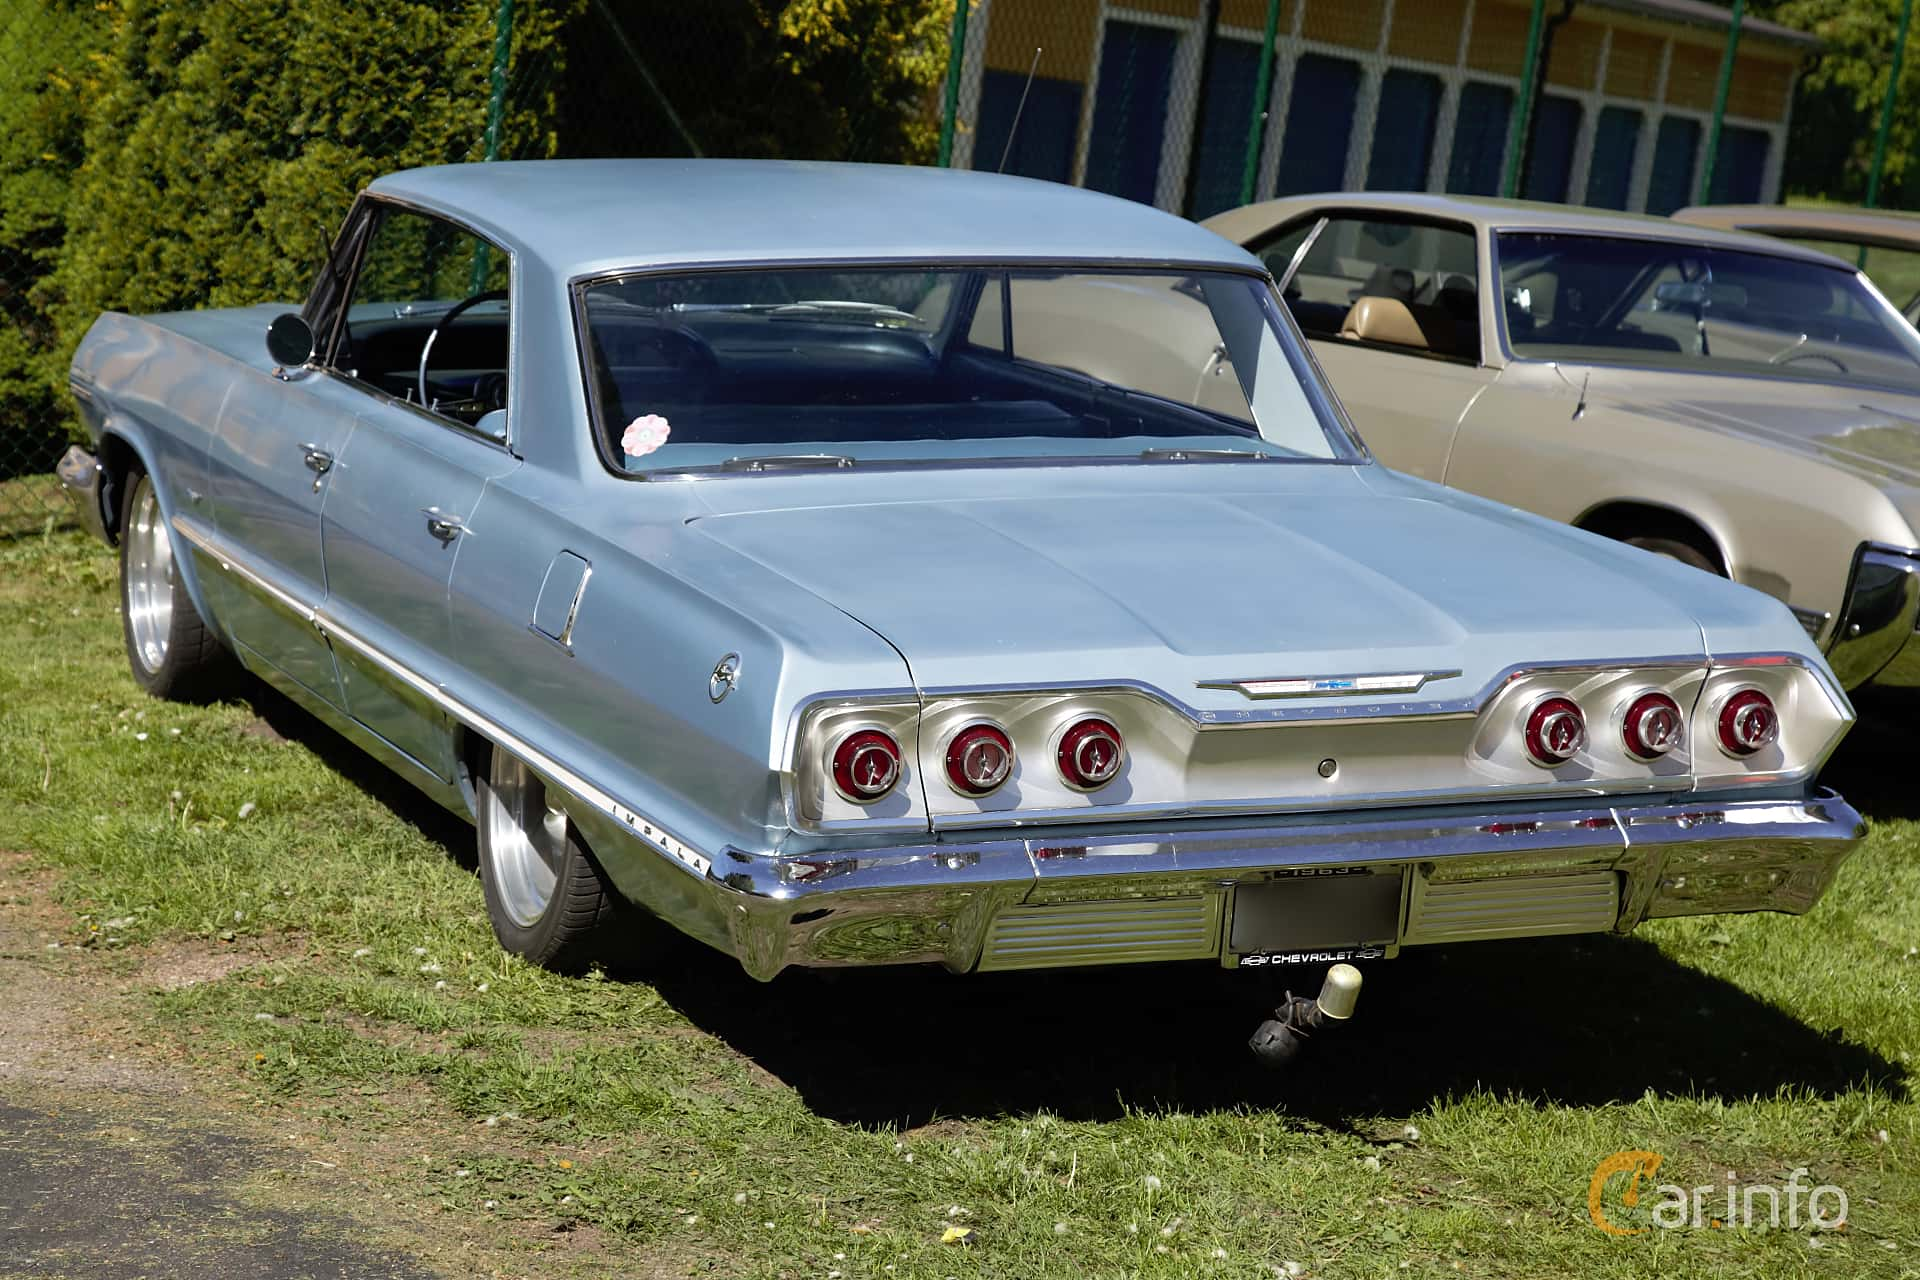 Chevrolet Impala Sport Sedan 4.6 V8 Powerglide, 198hp, 1963